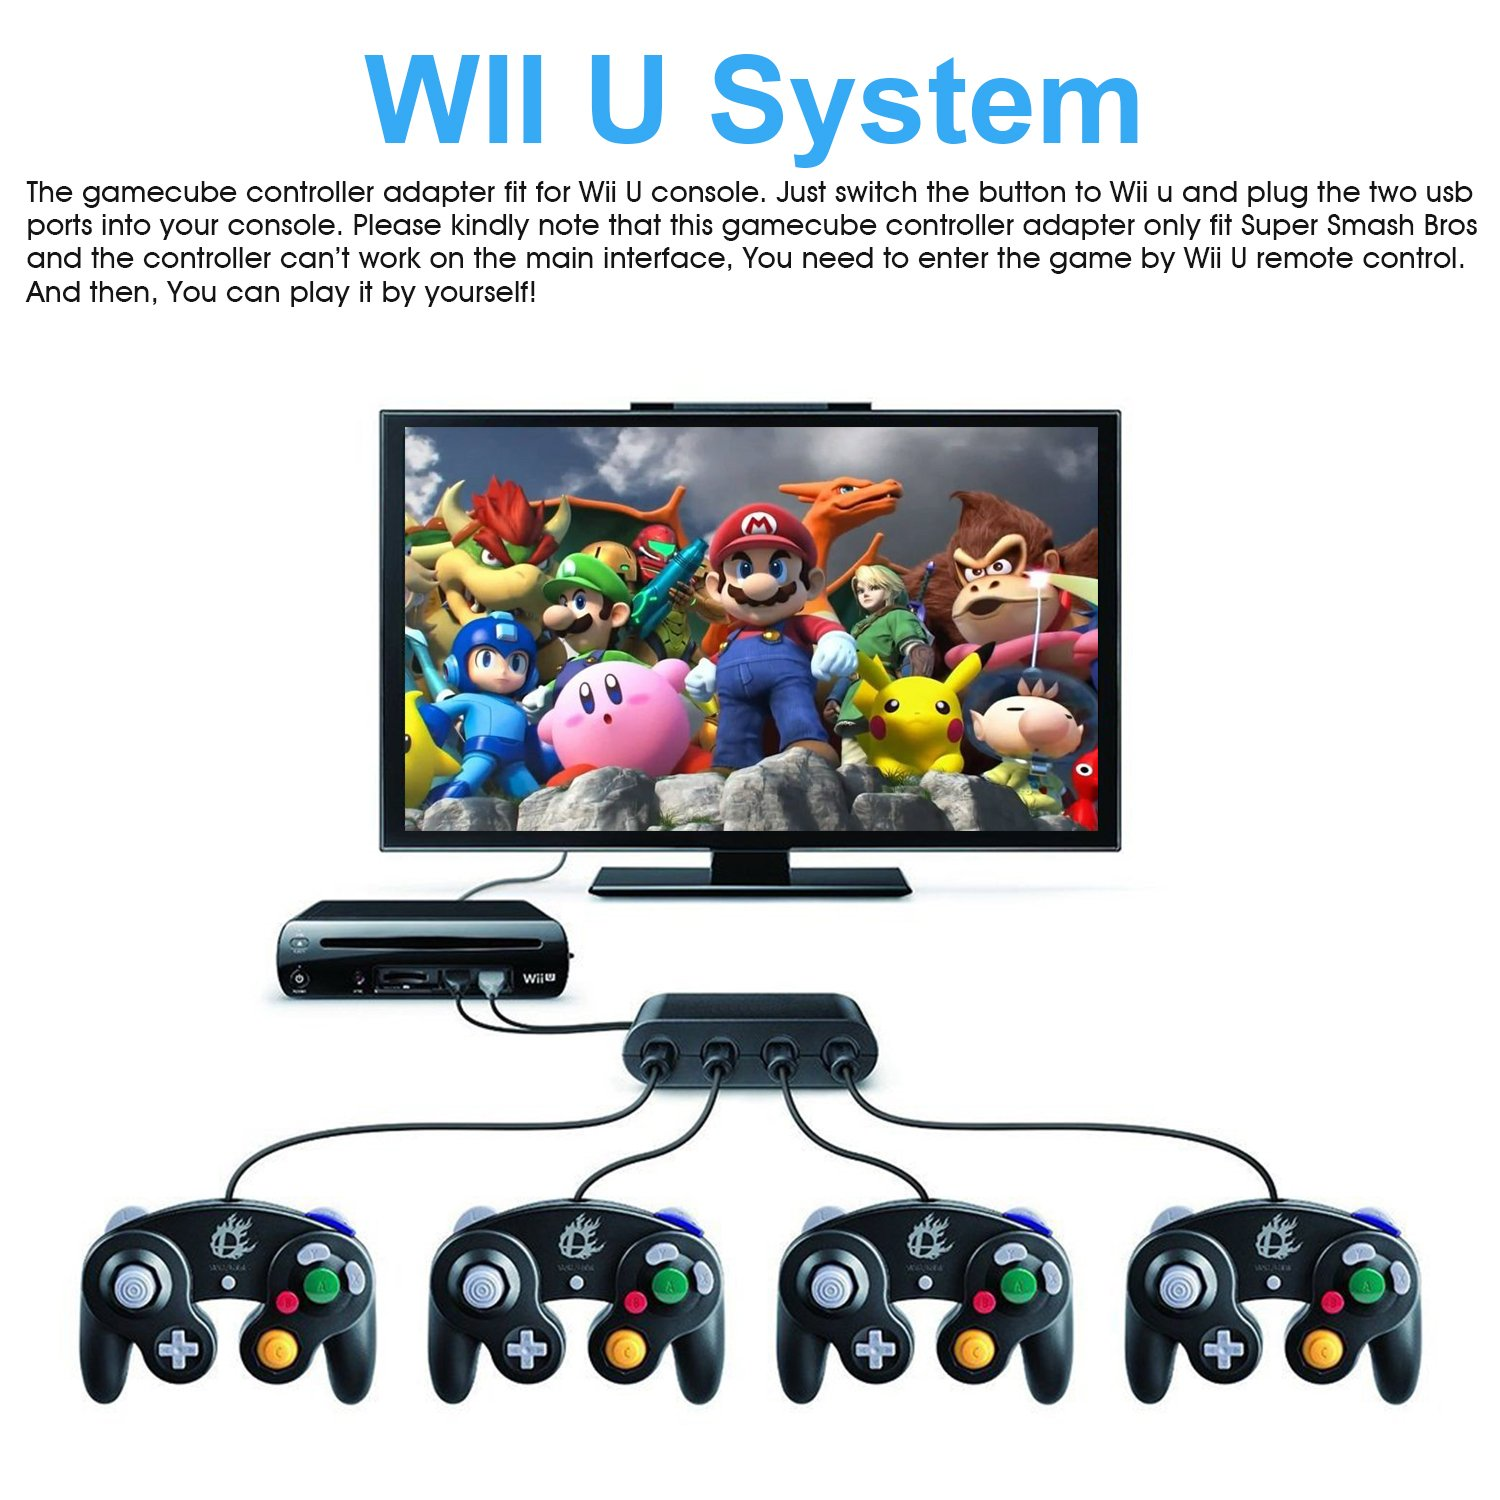 Amazon wii u gamecube controller adapteryteam gamecube ngc amazon wii u gamecube controller adapteryteam gamecube ngc controller adapter for wii unintendo switch and pc usbeasy to plug and no driver need4 solutioingenieria Images